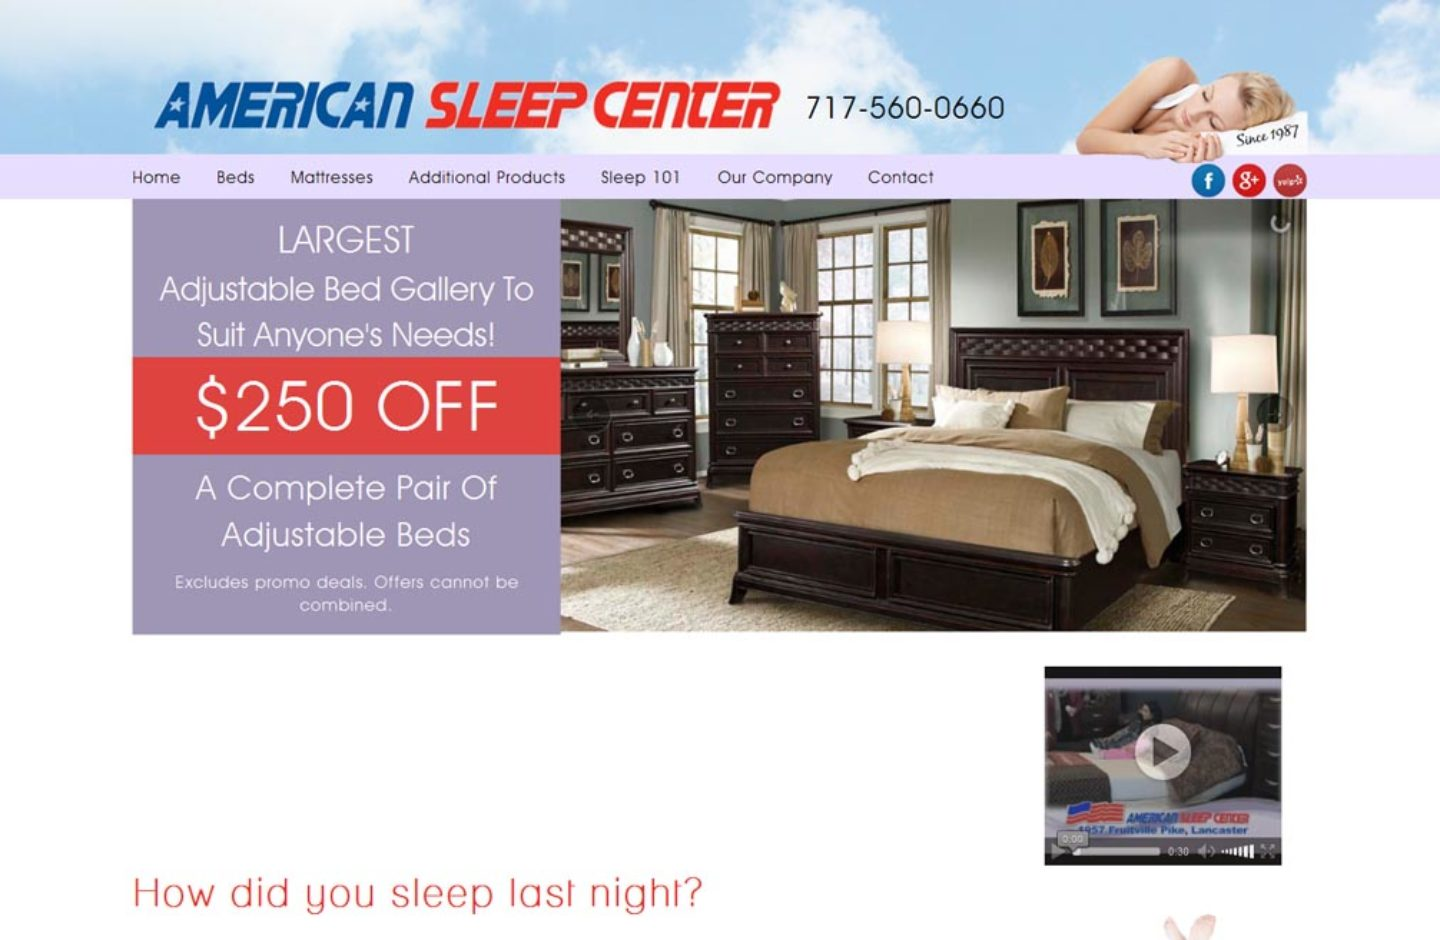 American Sleep Center